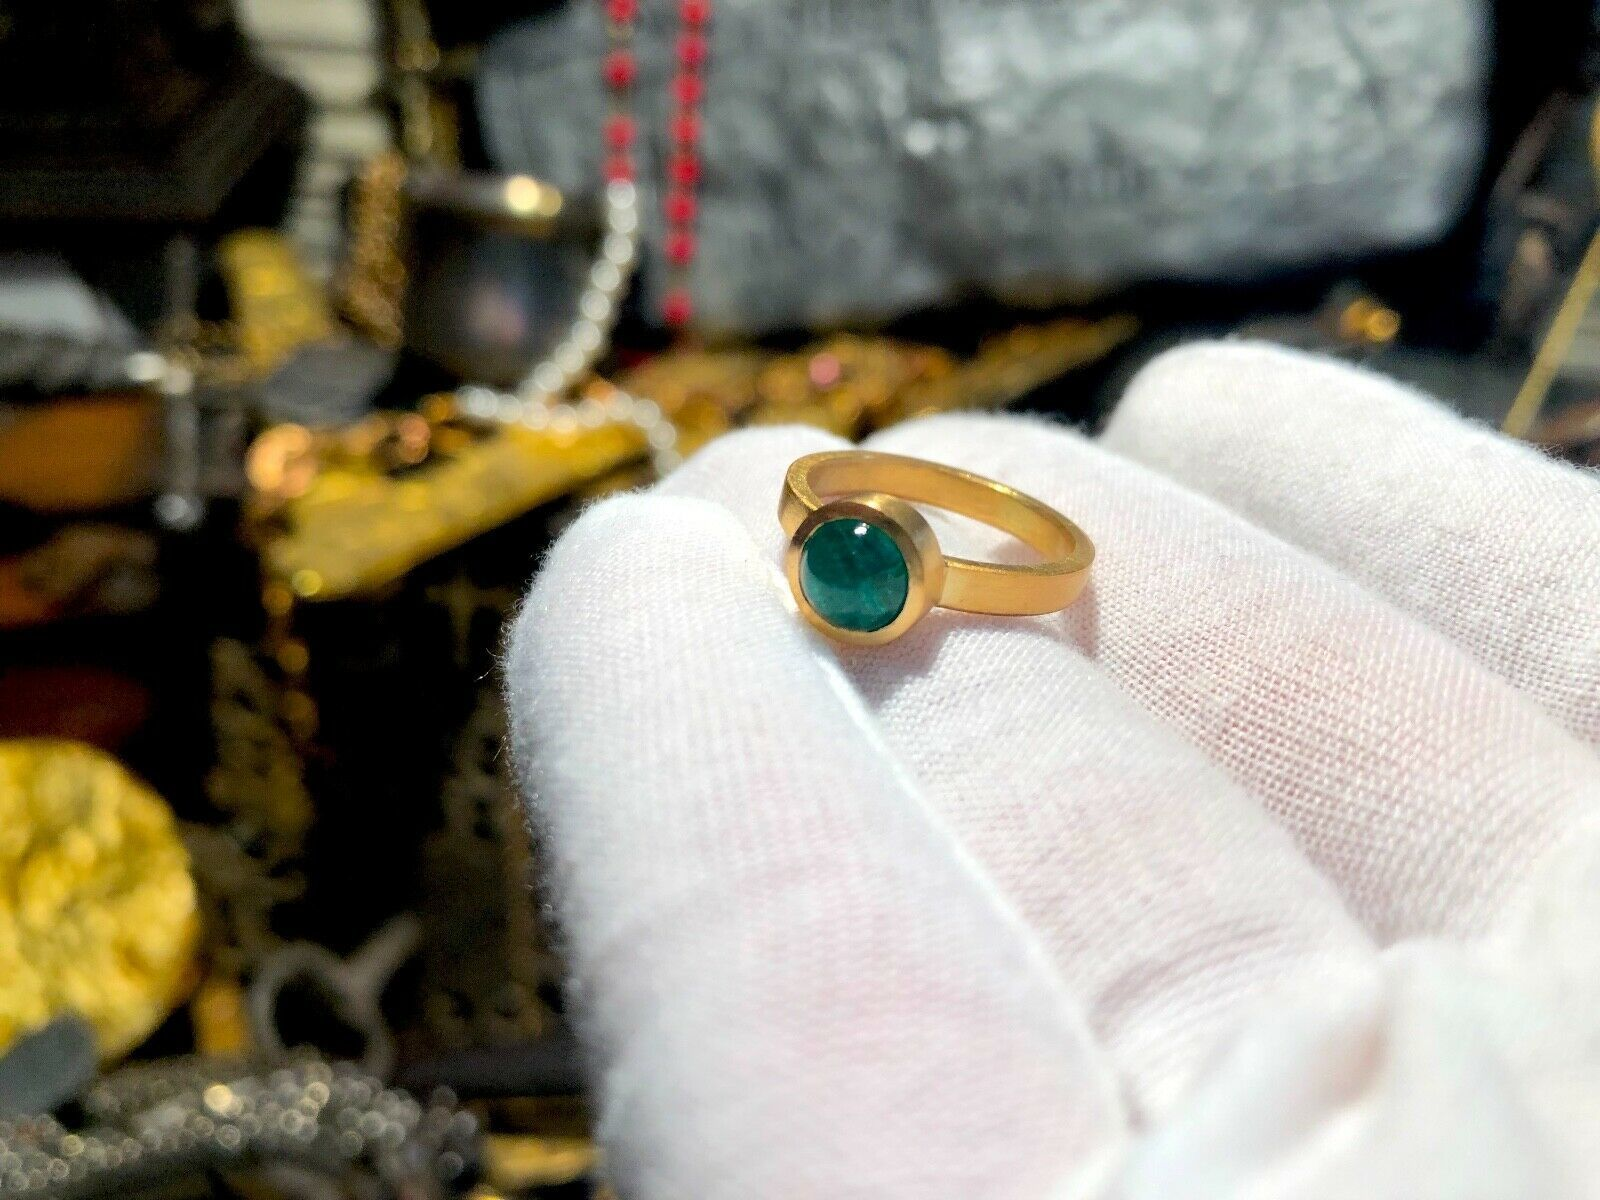 ATOCHA EMERALD 22KT SOLID GOLD RING REPRODUCTION PIRATE GOLD COINS